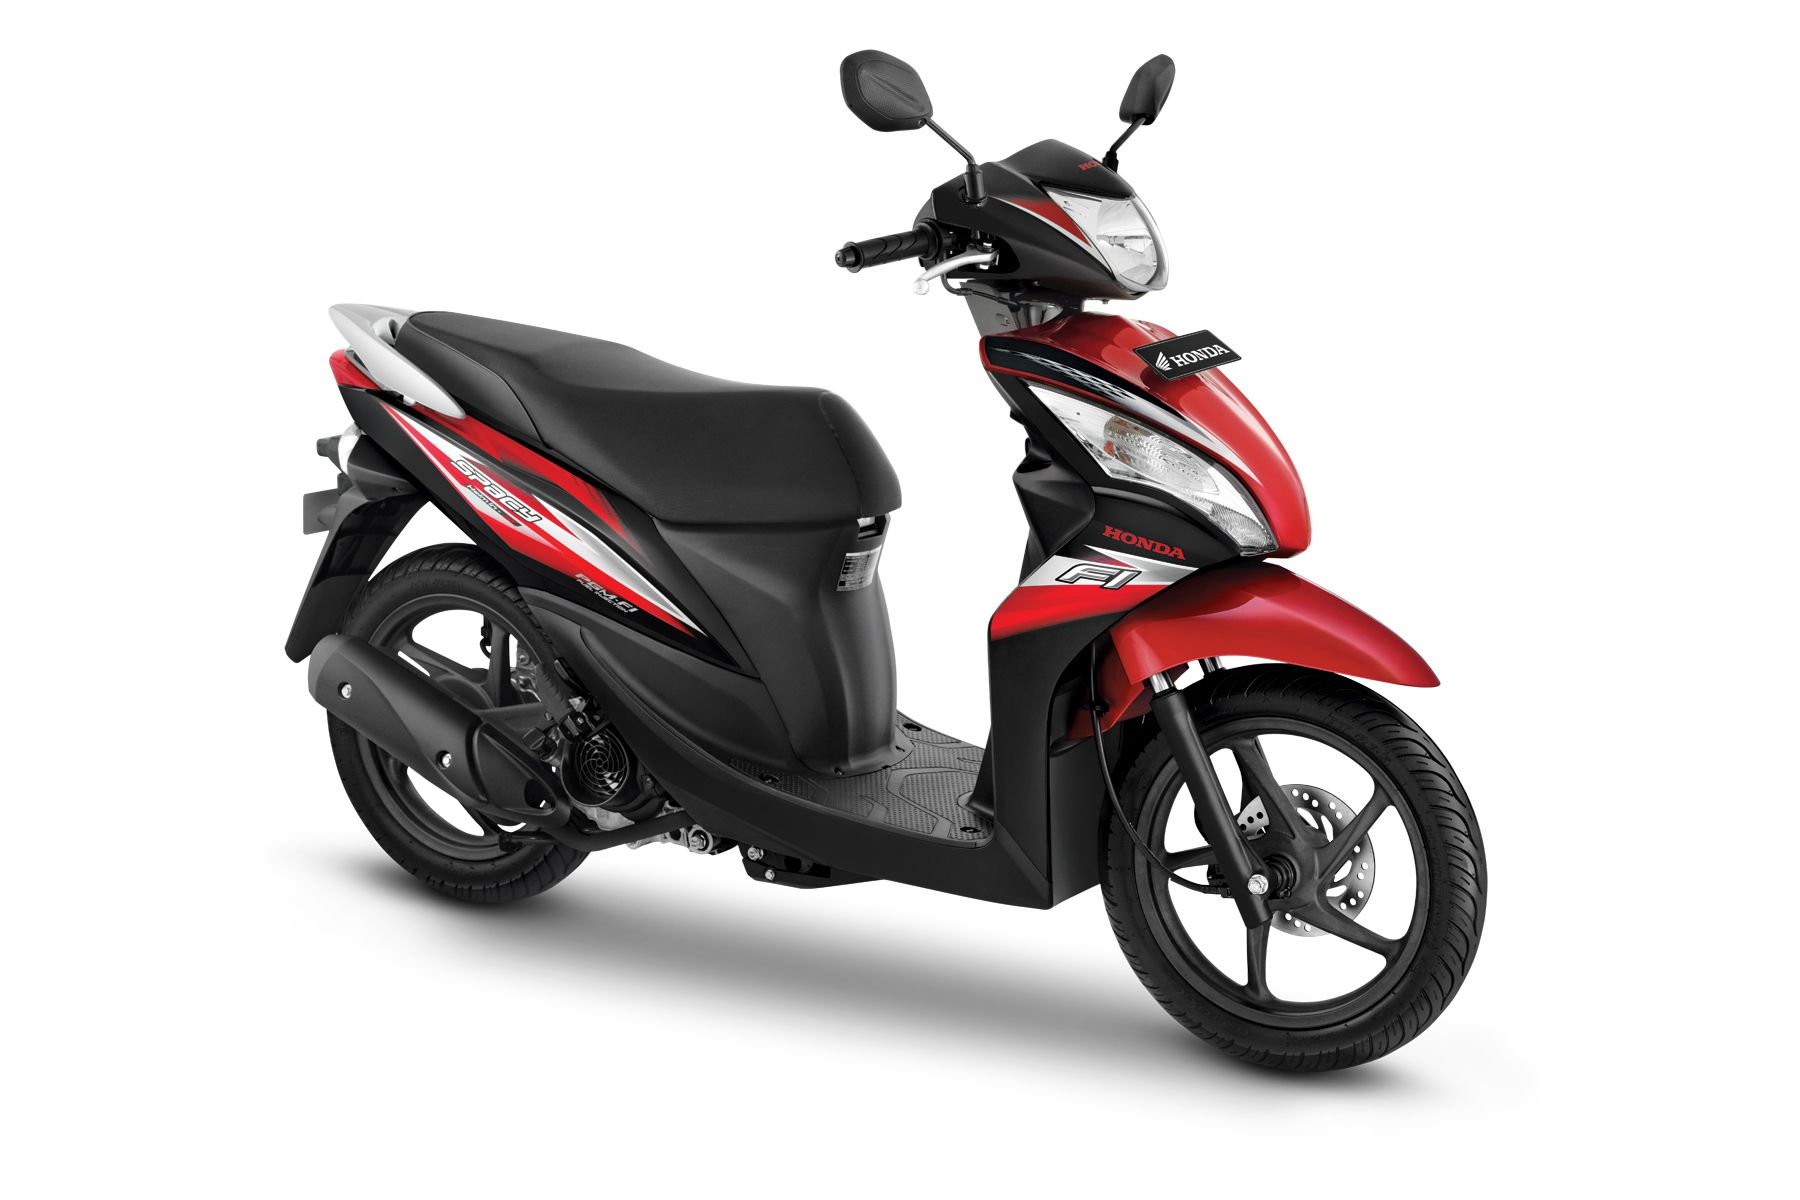 Kumpulan Modifikasi Motor Matic Spacy Terbaru Kampong Motor